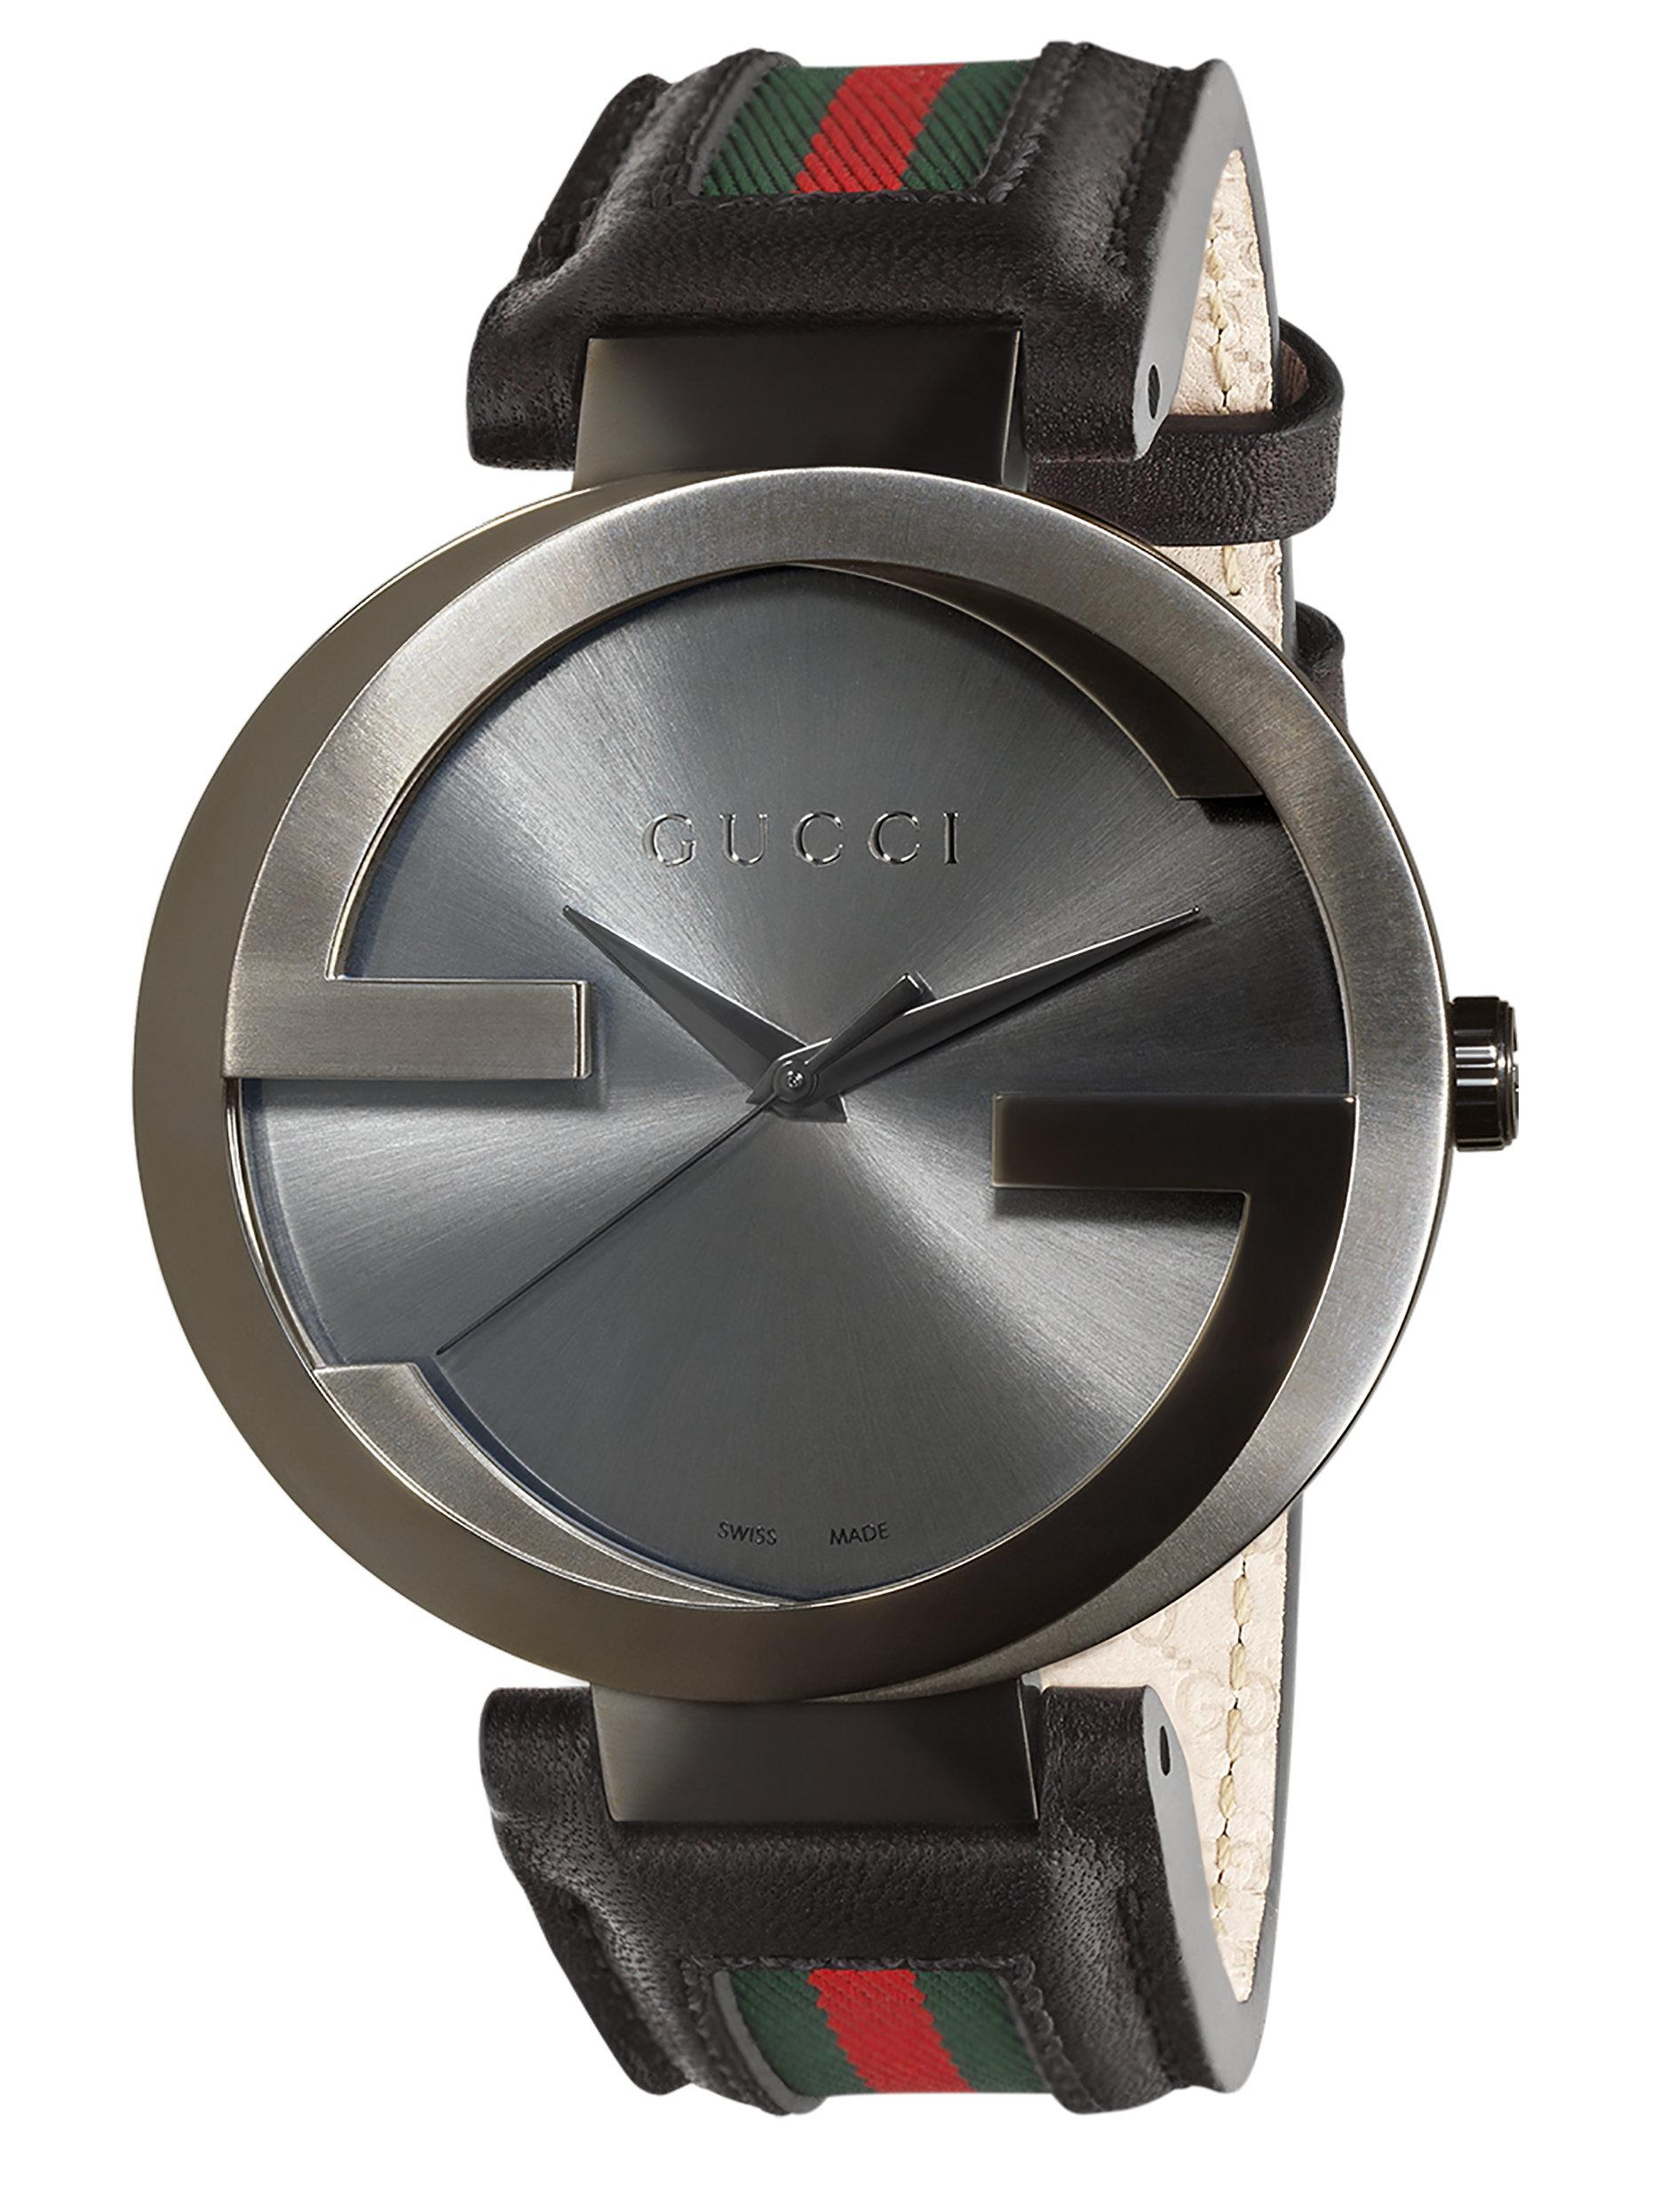 7831573b554 Lyst - Gucci Watch